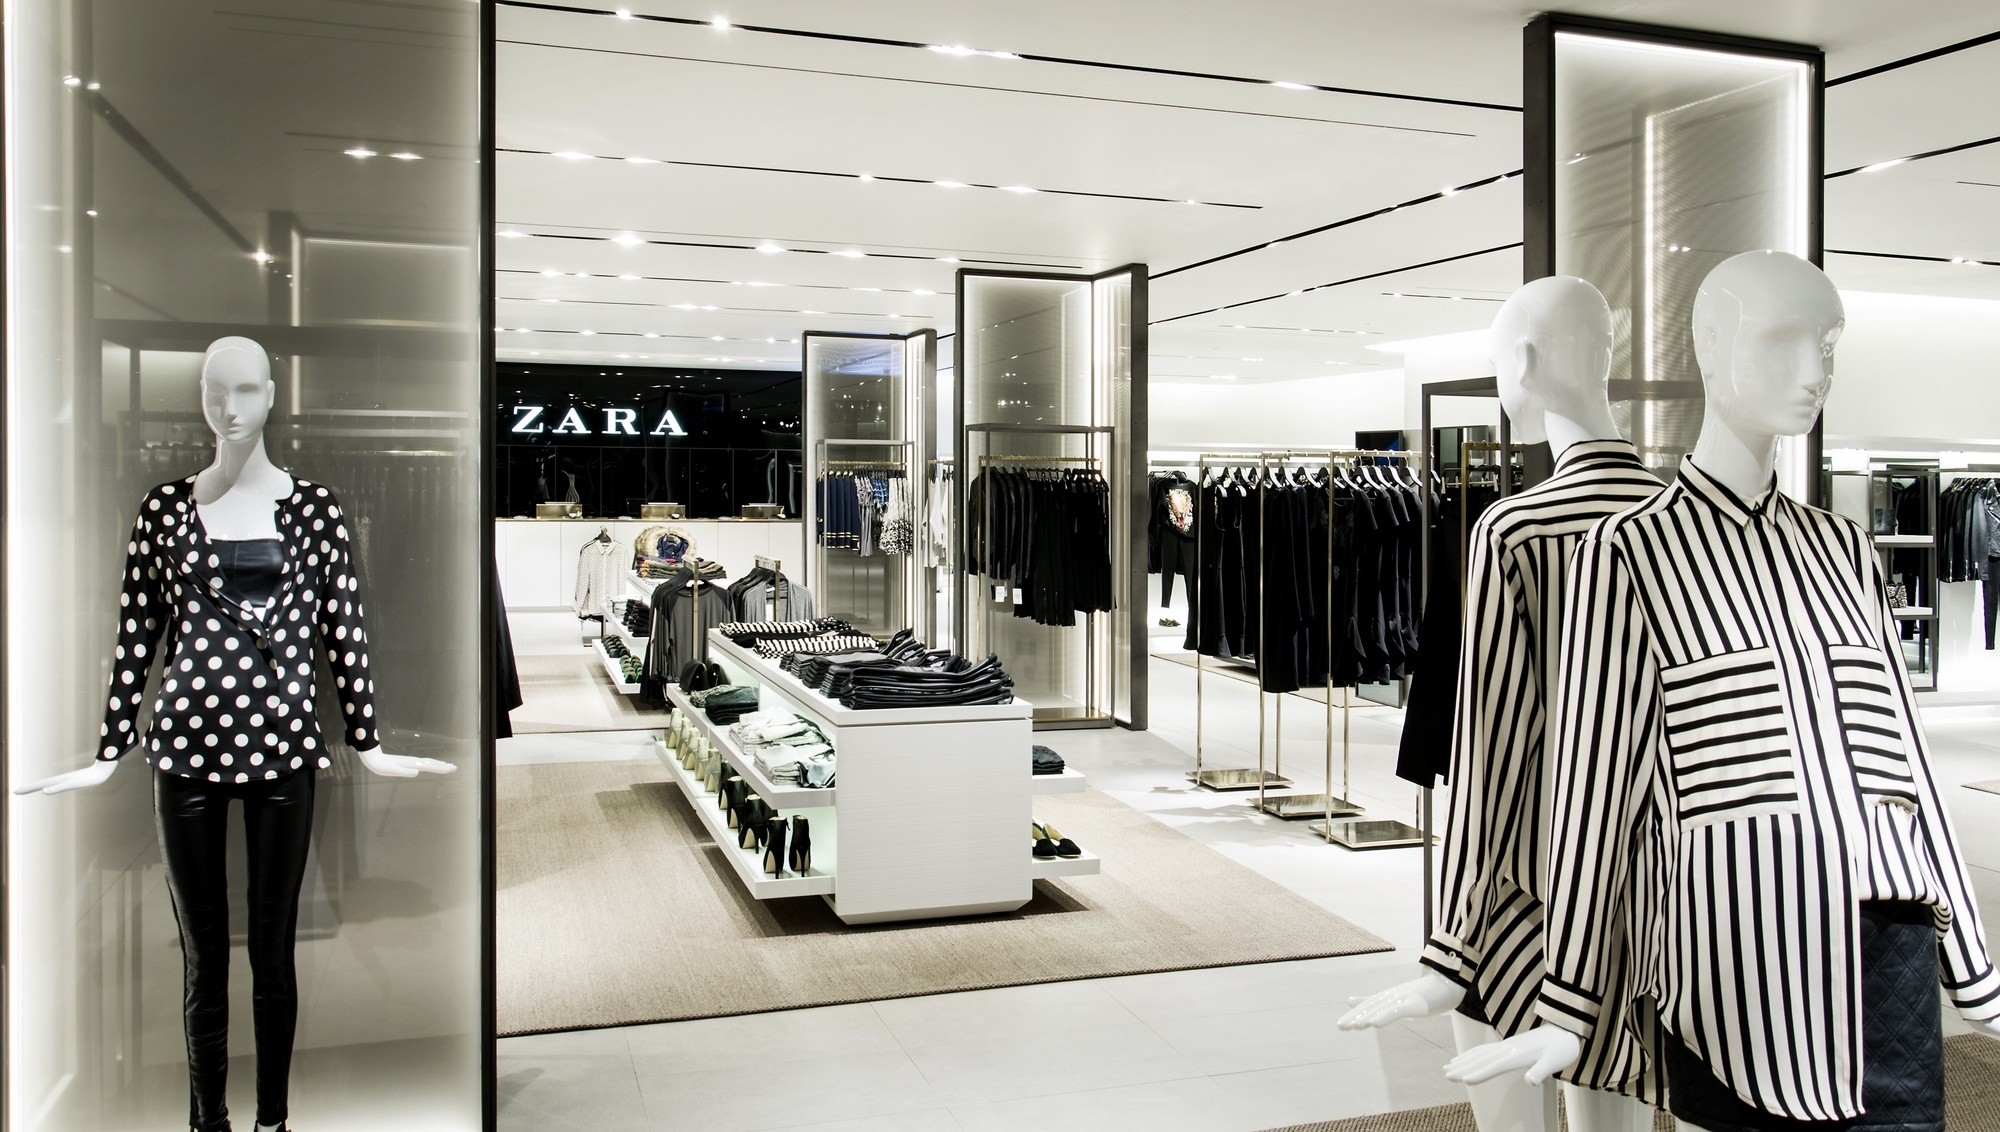 zara inditex The world's biggest clothing retail group inditex, owner of fashion chain zara, today reported a 3% rise in first-half profit and a rise in gross margin despite a stronger euro.